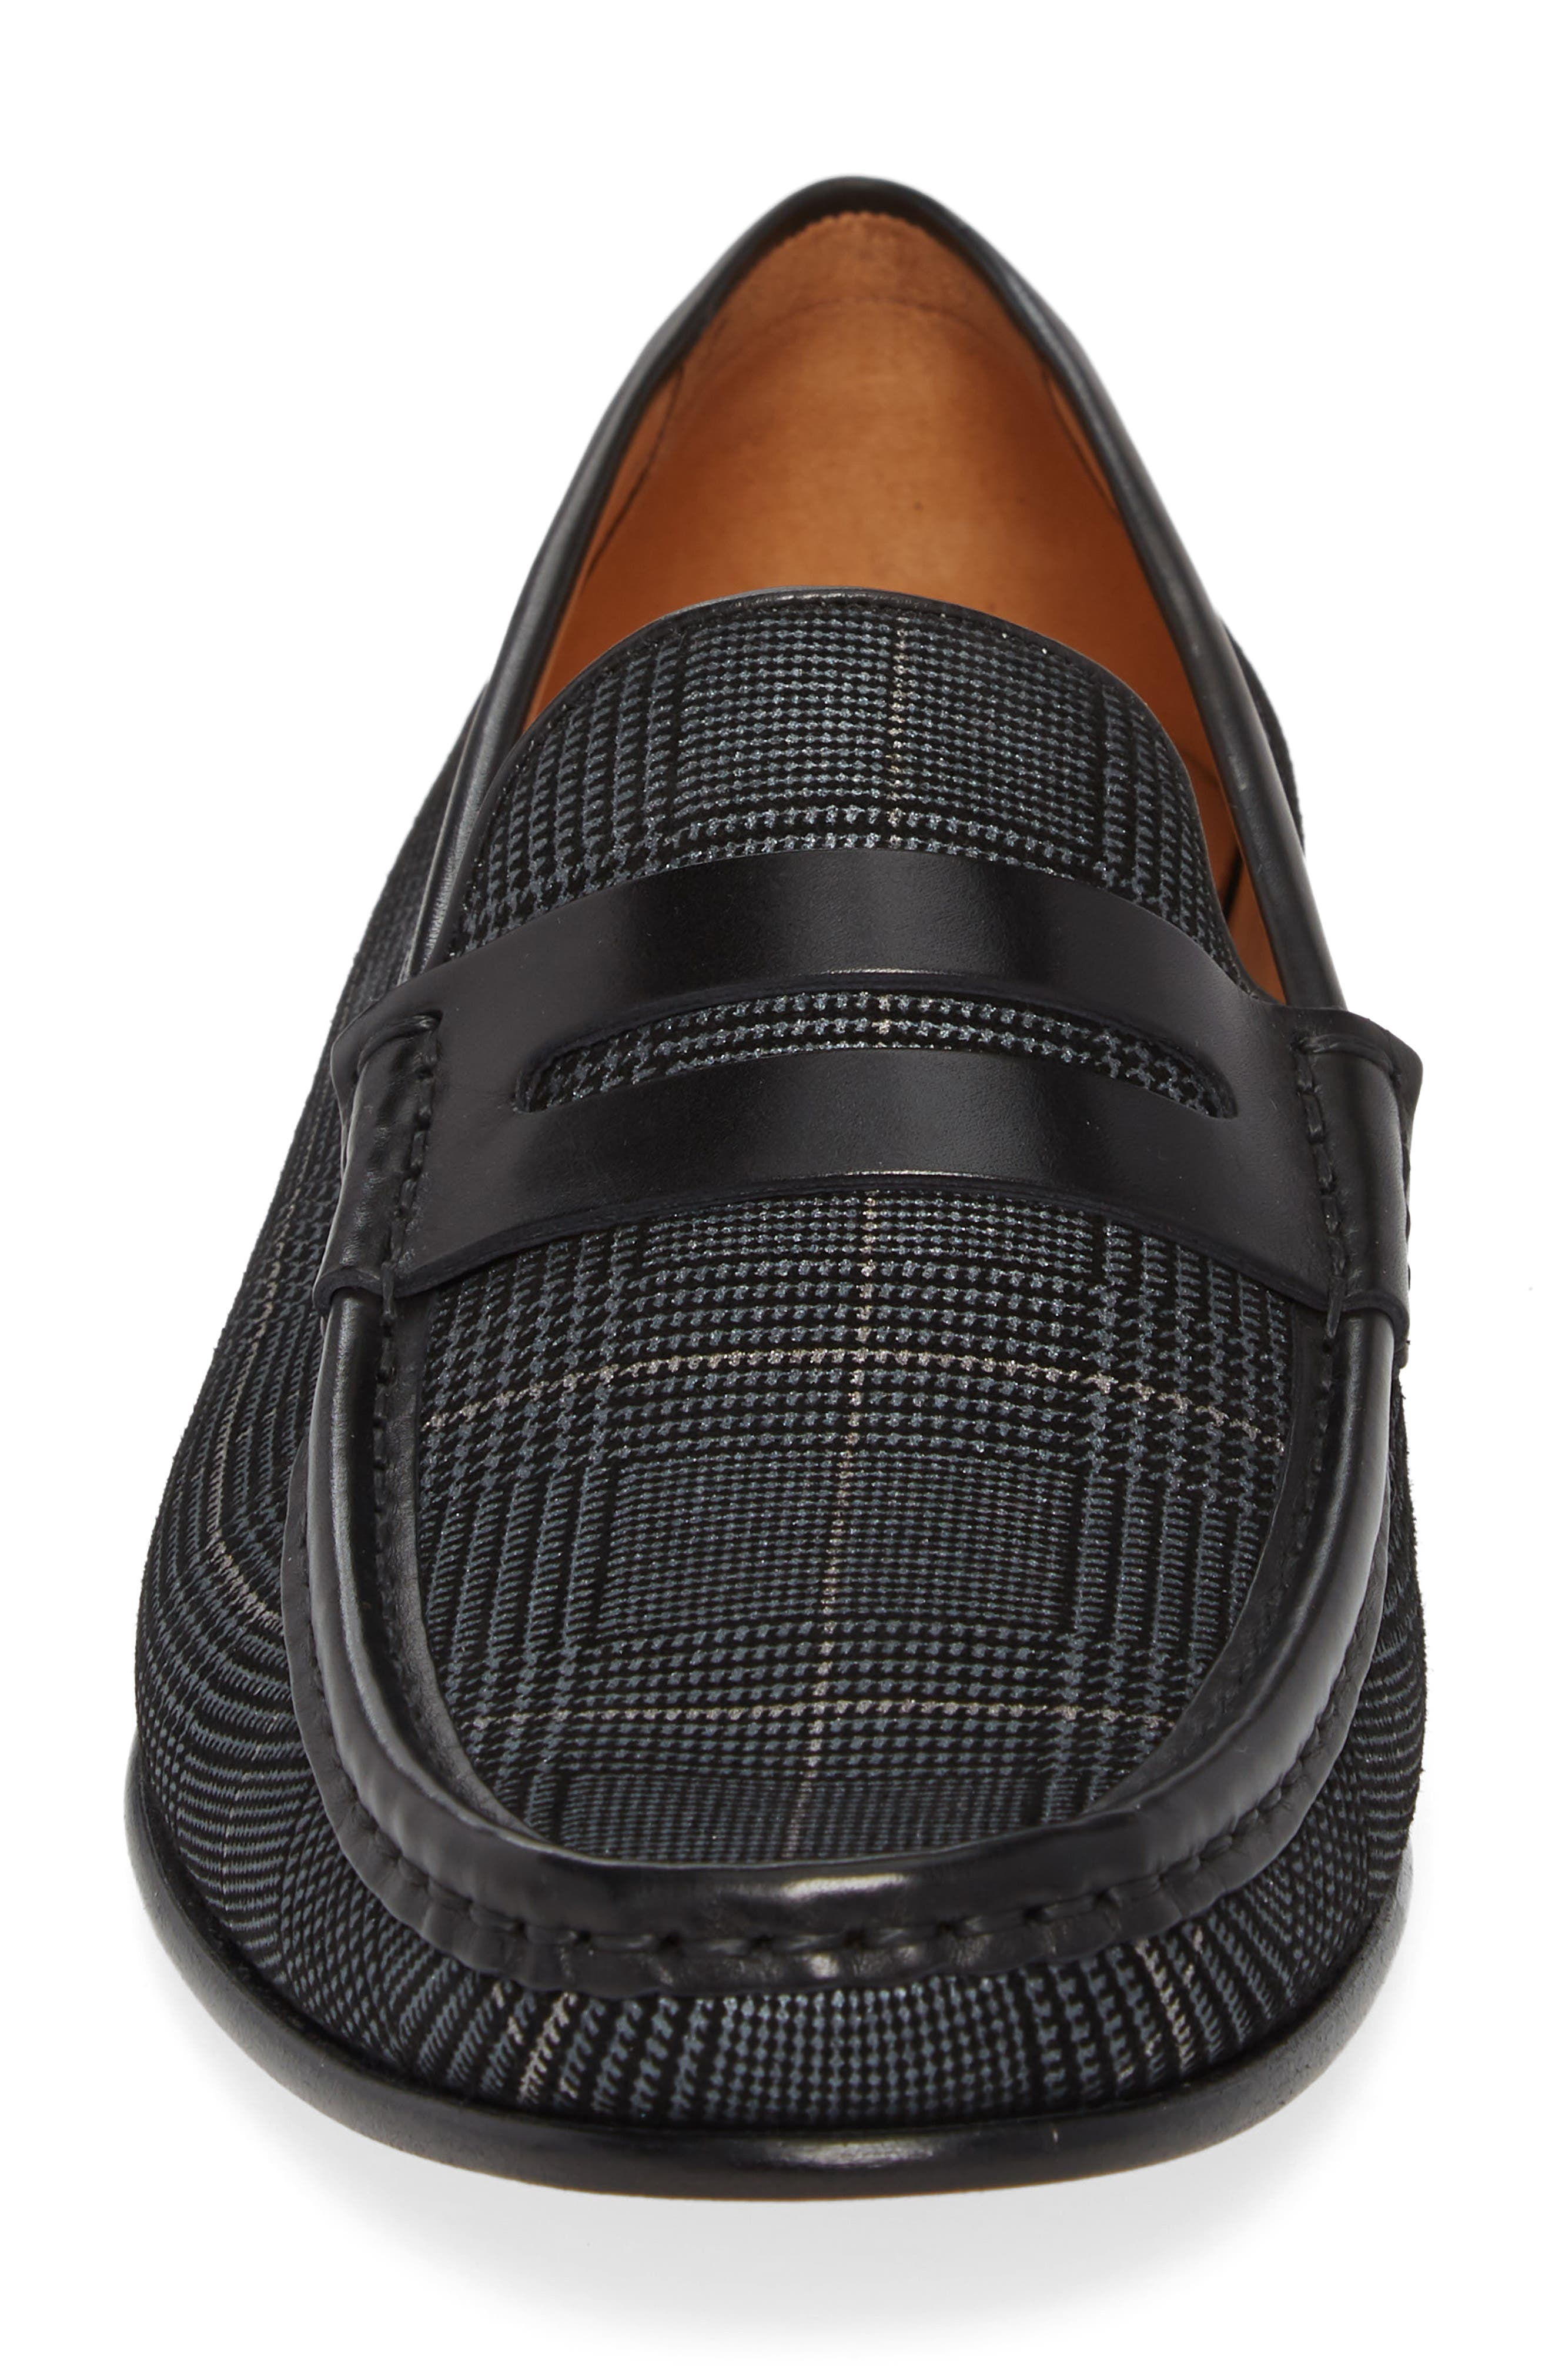 Lares I Houndstooth Penny Loafer,                             Alternate thumbnail 4, color,                             Black Suede/ Leather